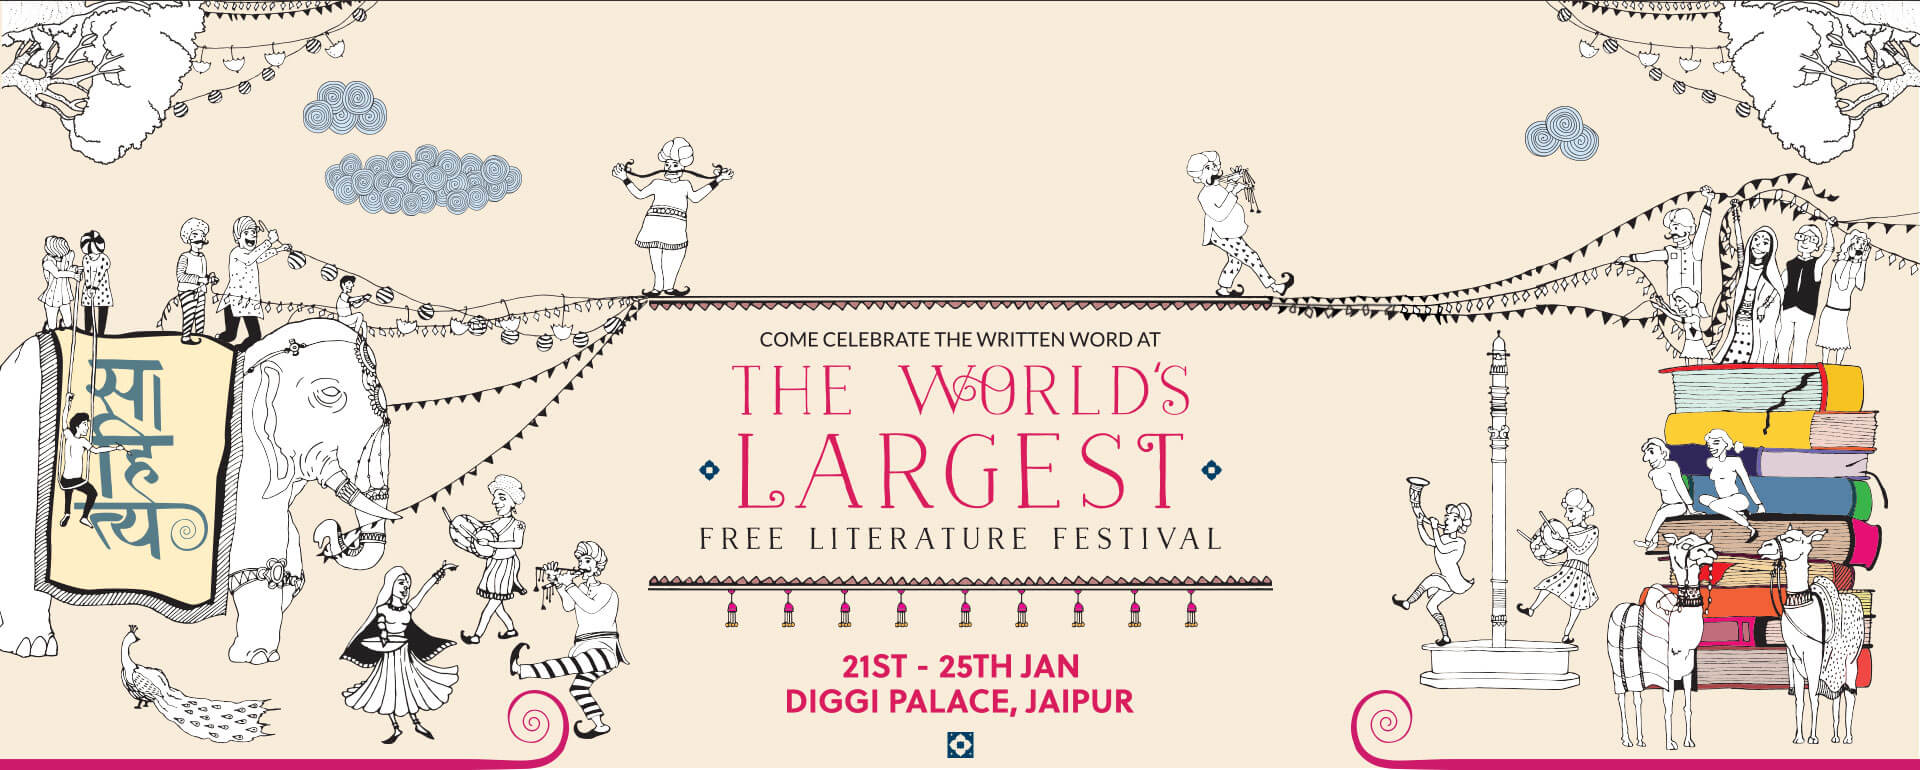 Jaipur Literary Festival featured in January content calendar